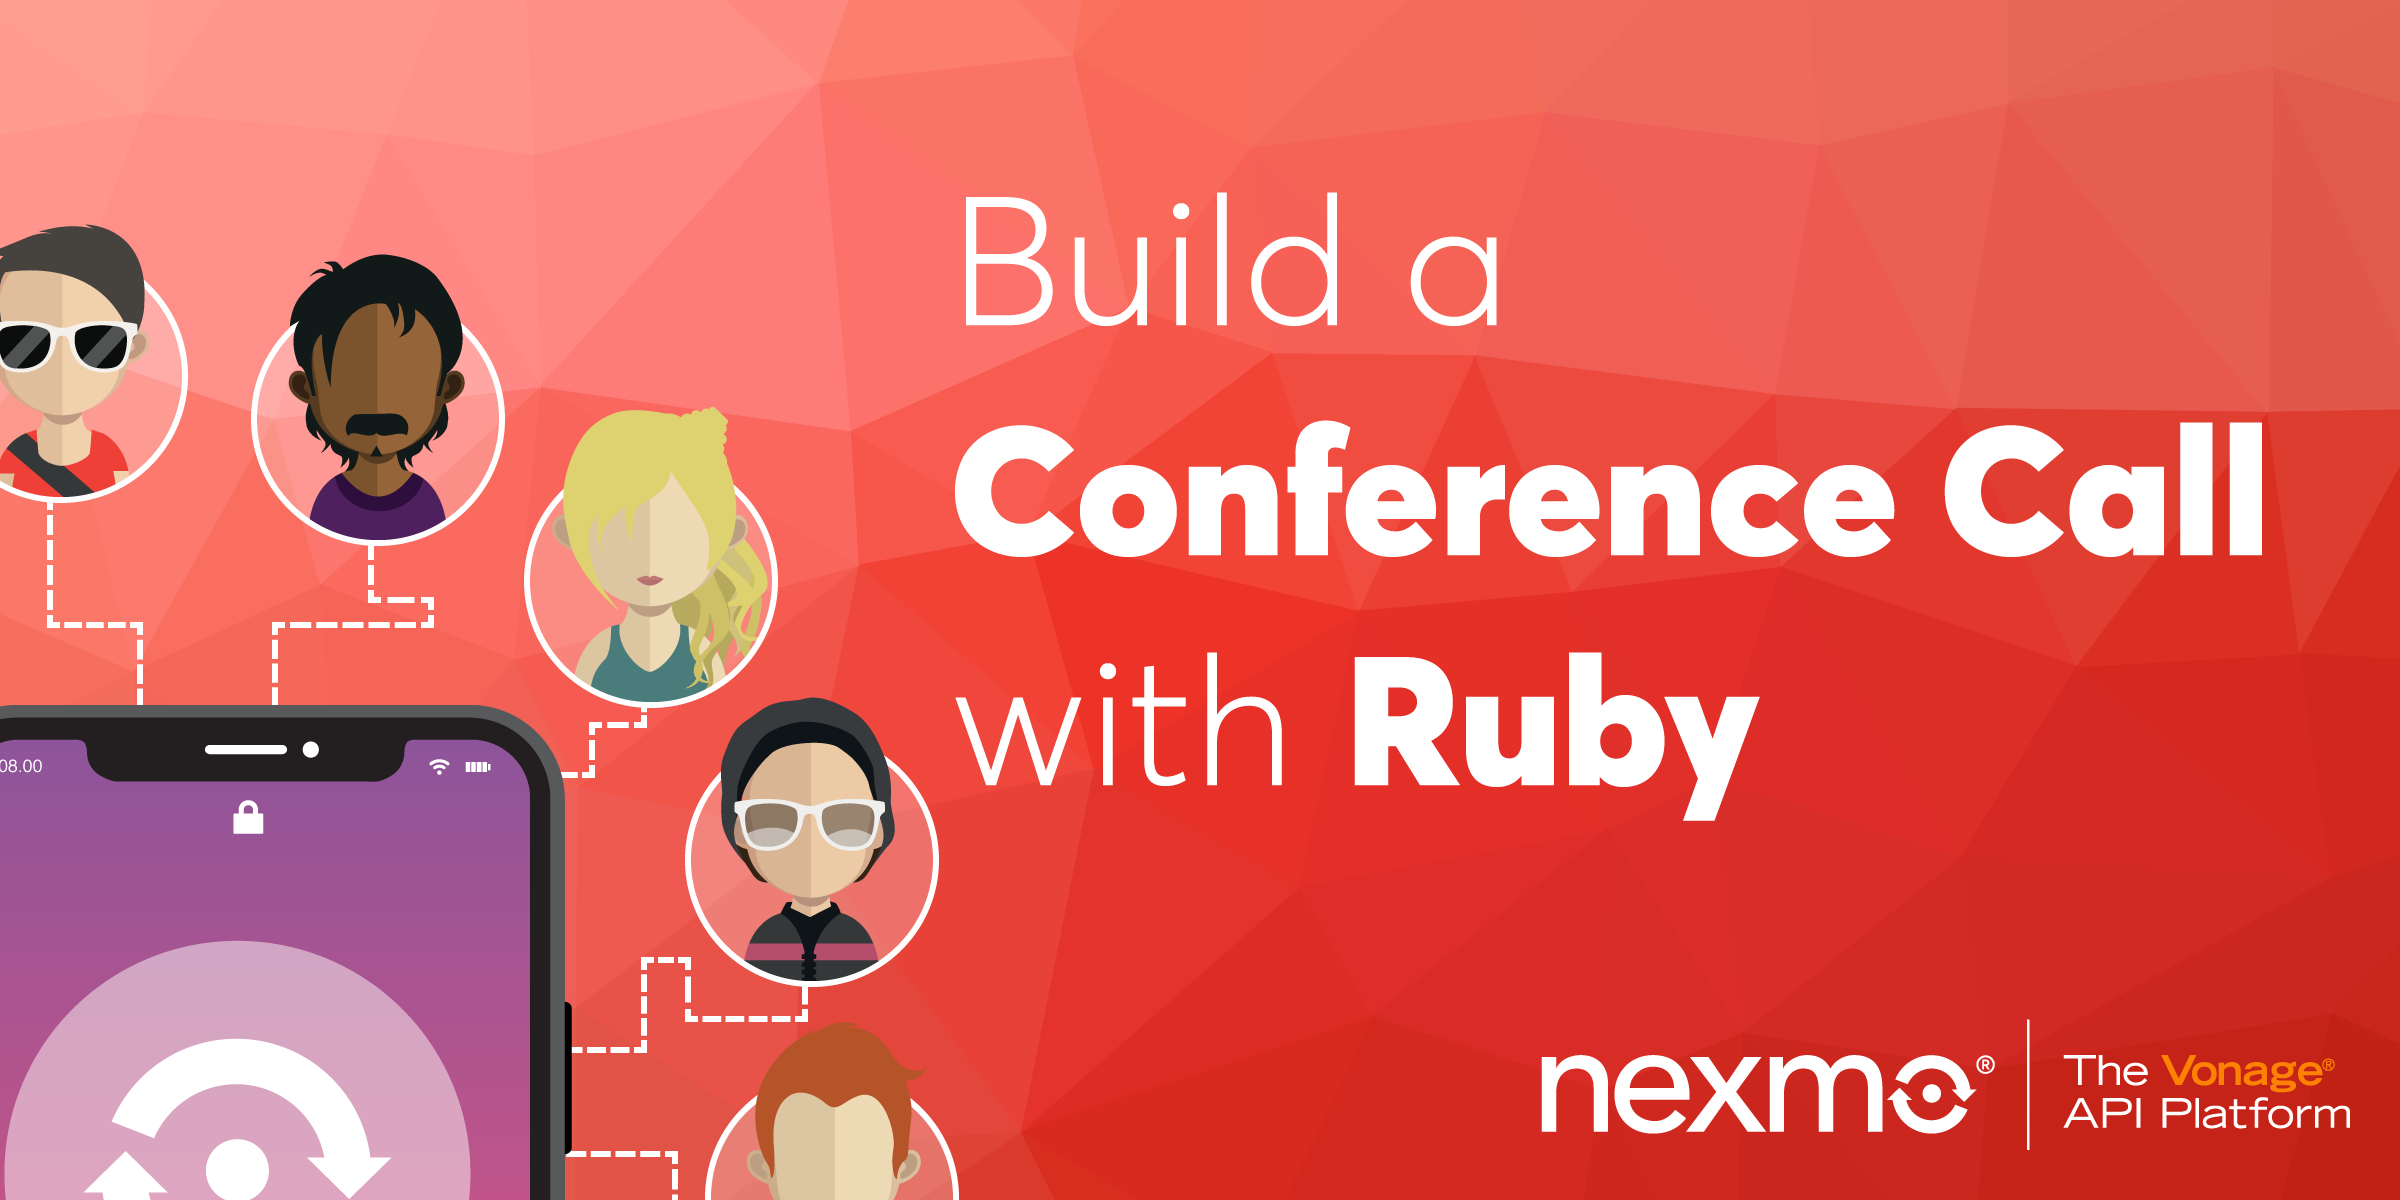 Build a Conference Call with Ruby on Rails